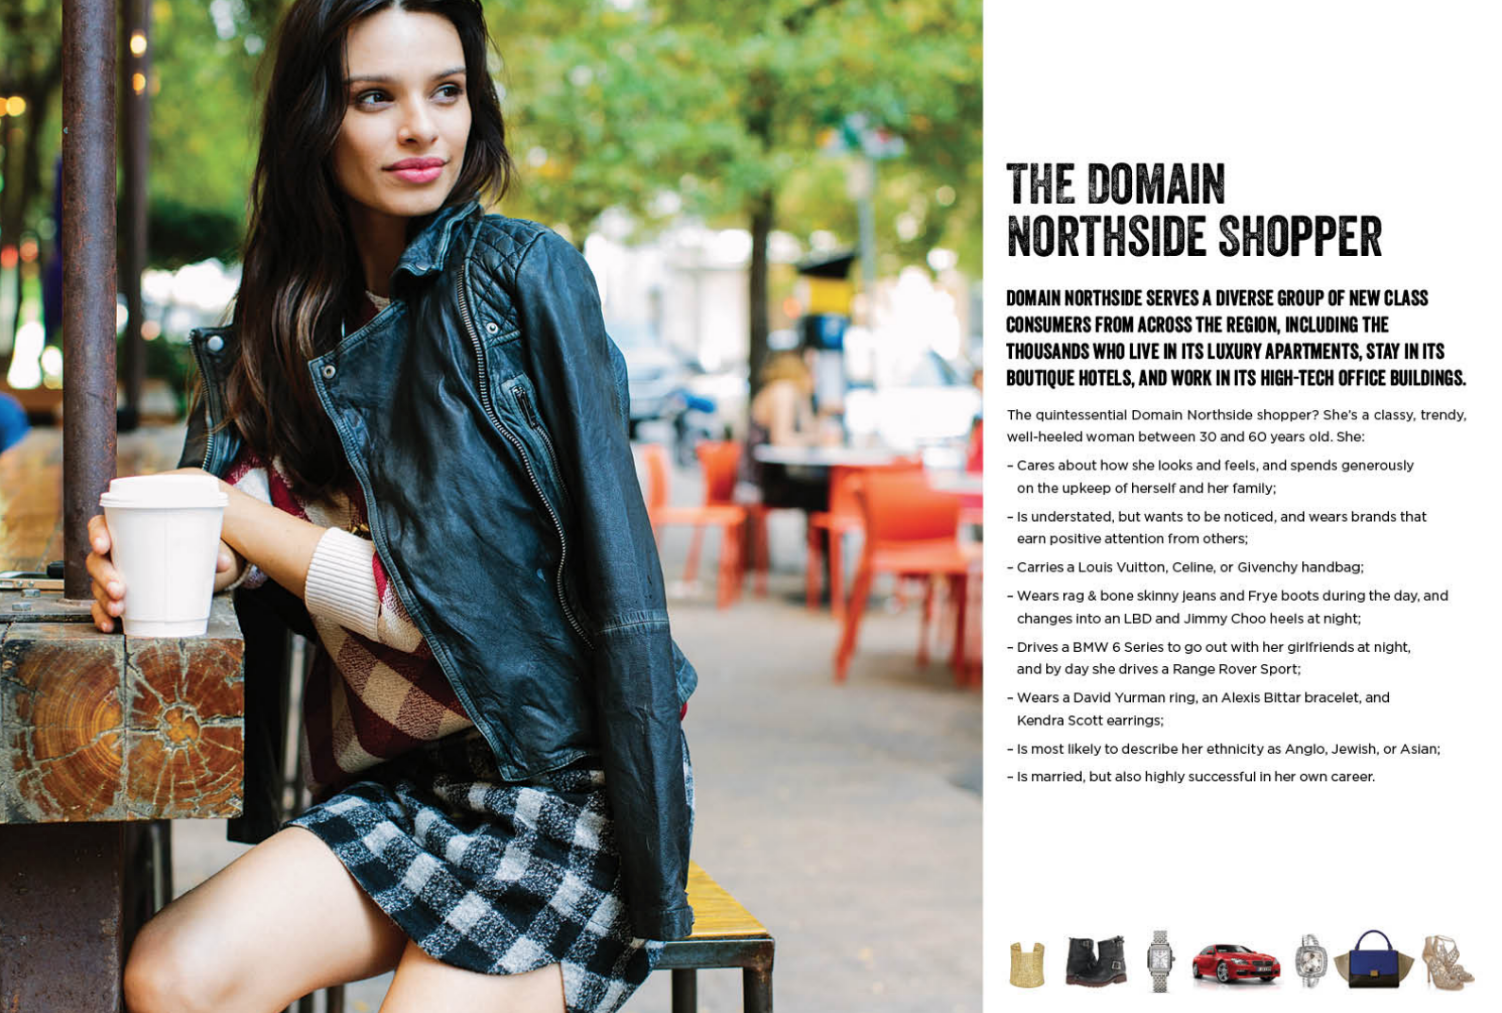 The page within Domain NORTHSIDE's 2017 Leasing Brochure that has caused insult to many people of color in Austin and surrounding areas specifically excludes people of color from their image of the ideal shopper.